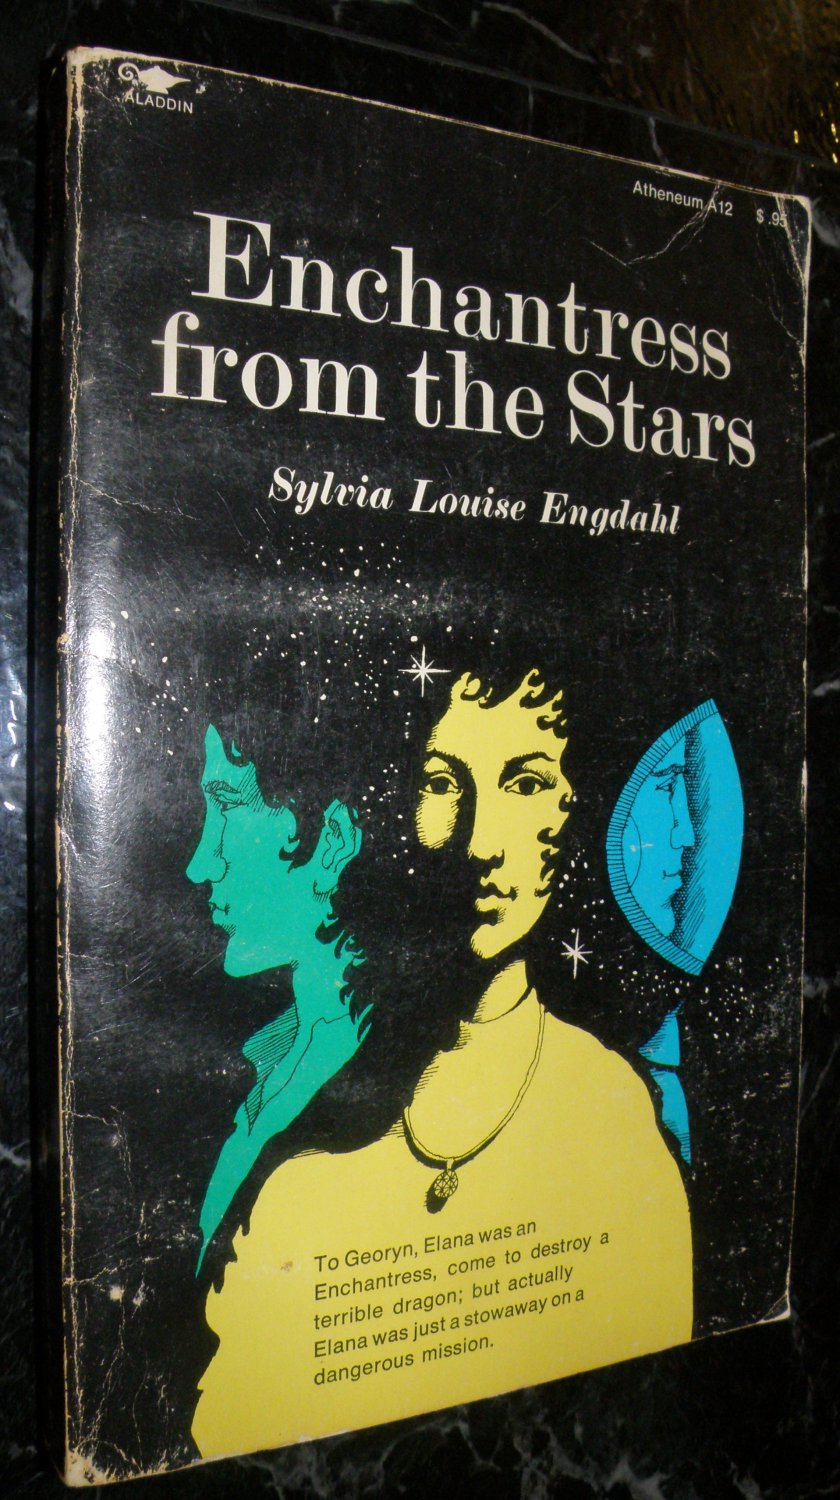 enchantress from the stars by sylvia louise engdahl essay While engdahl is best known for her award-winning young adult novel enchantress from the stars essays debate the issue foreword by sylvia louise engdahl.